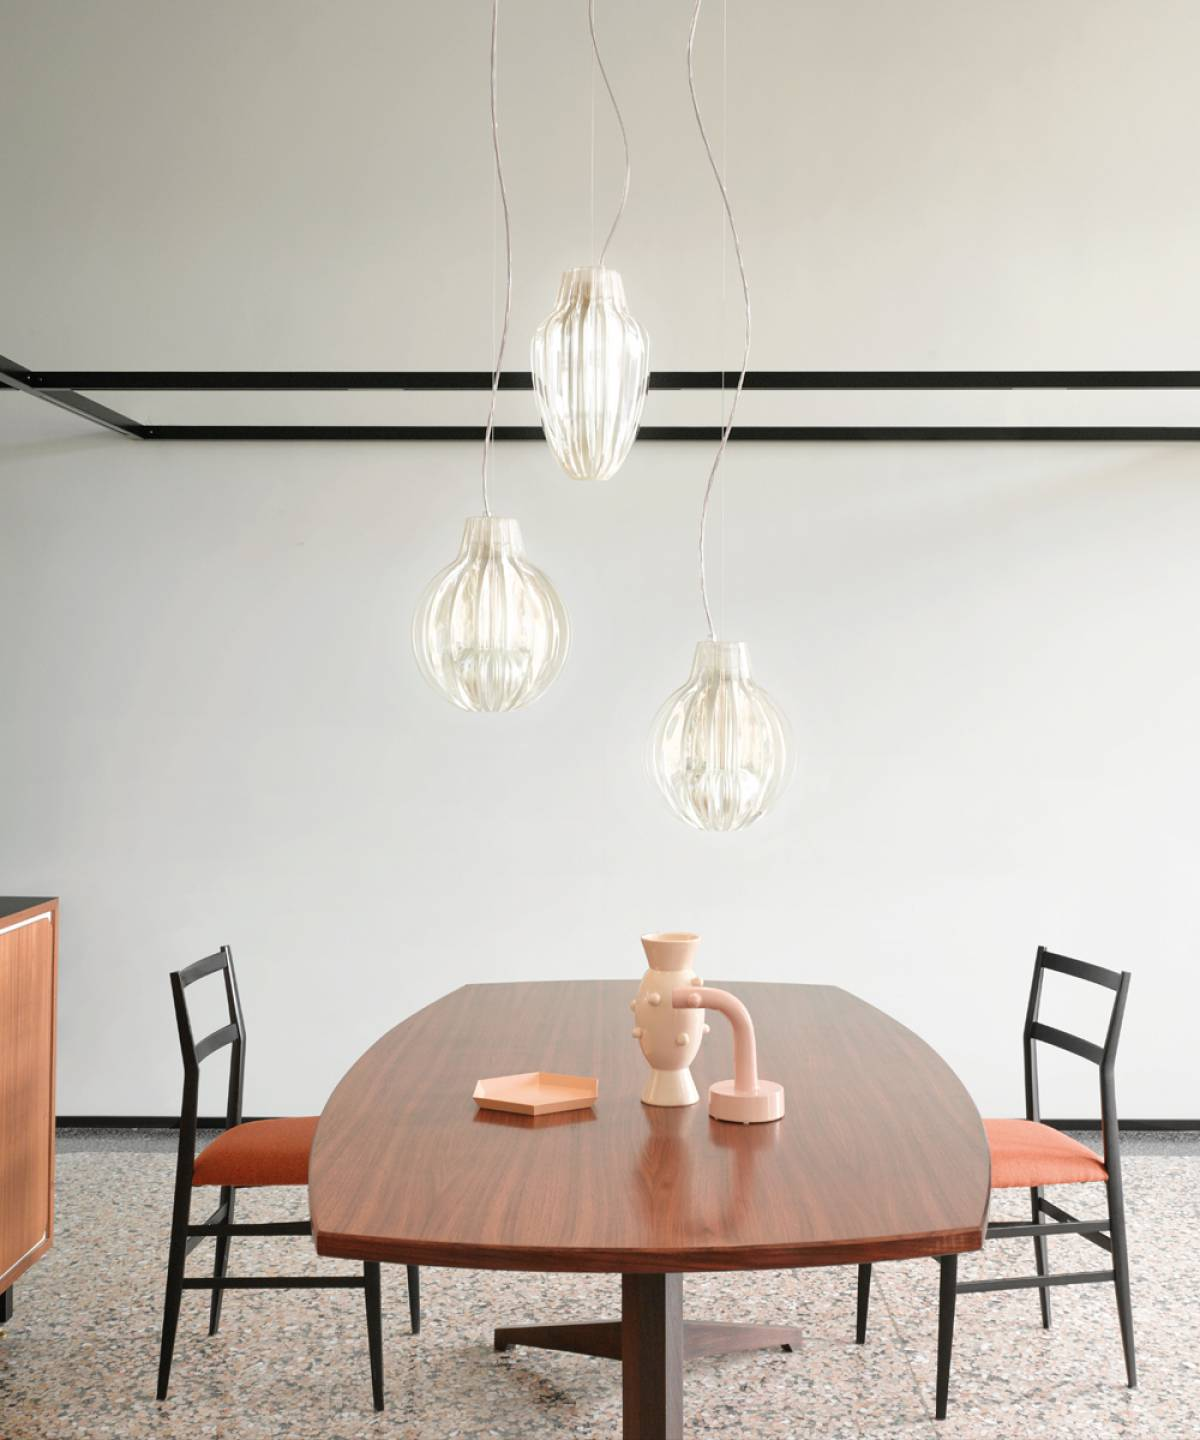 1 Agave suspension lamp Luceplan